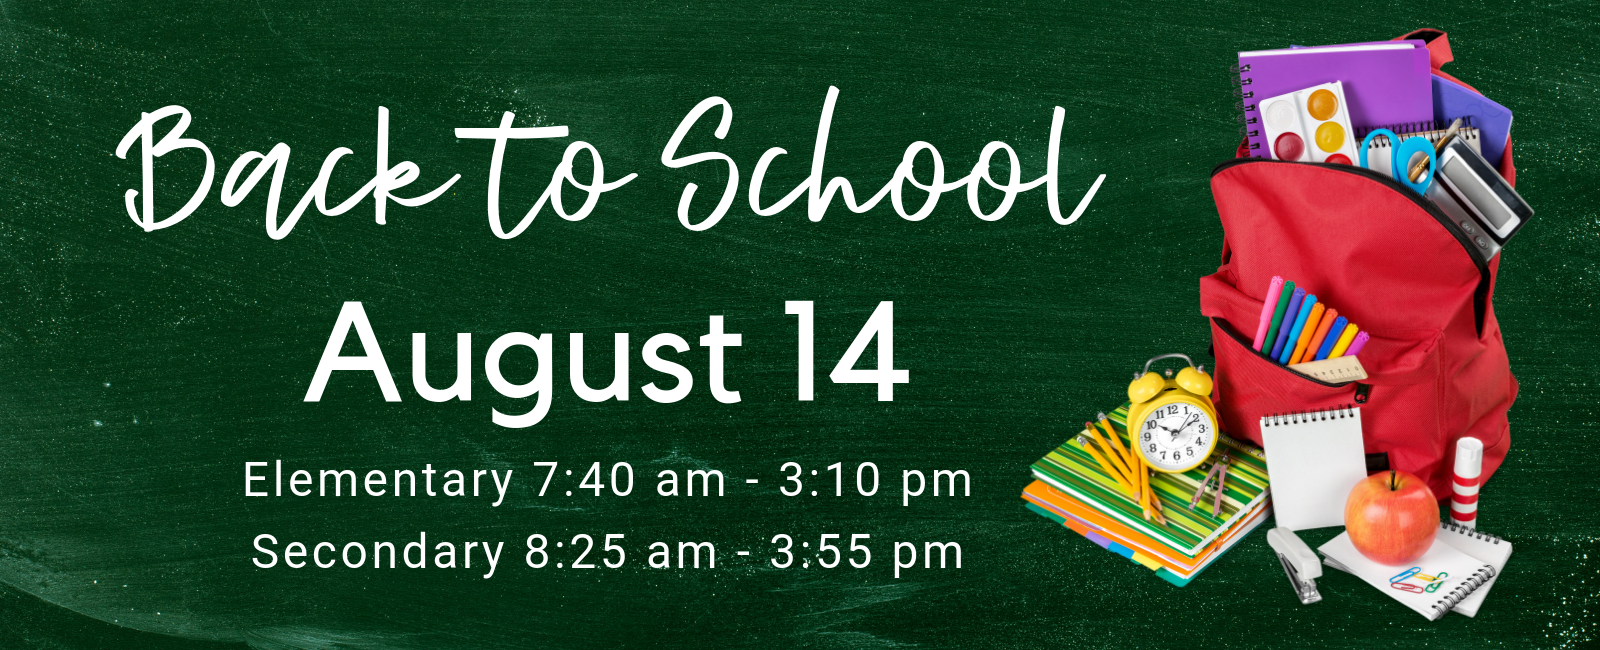 Back to School August 14